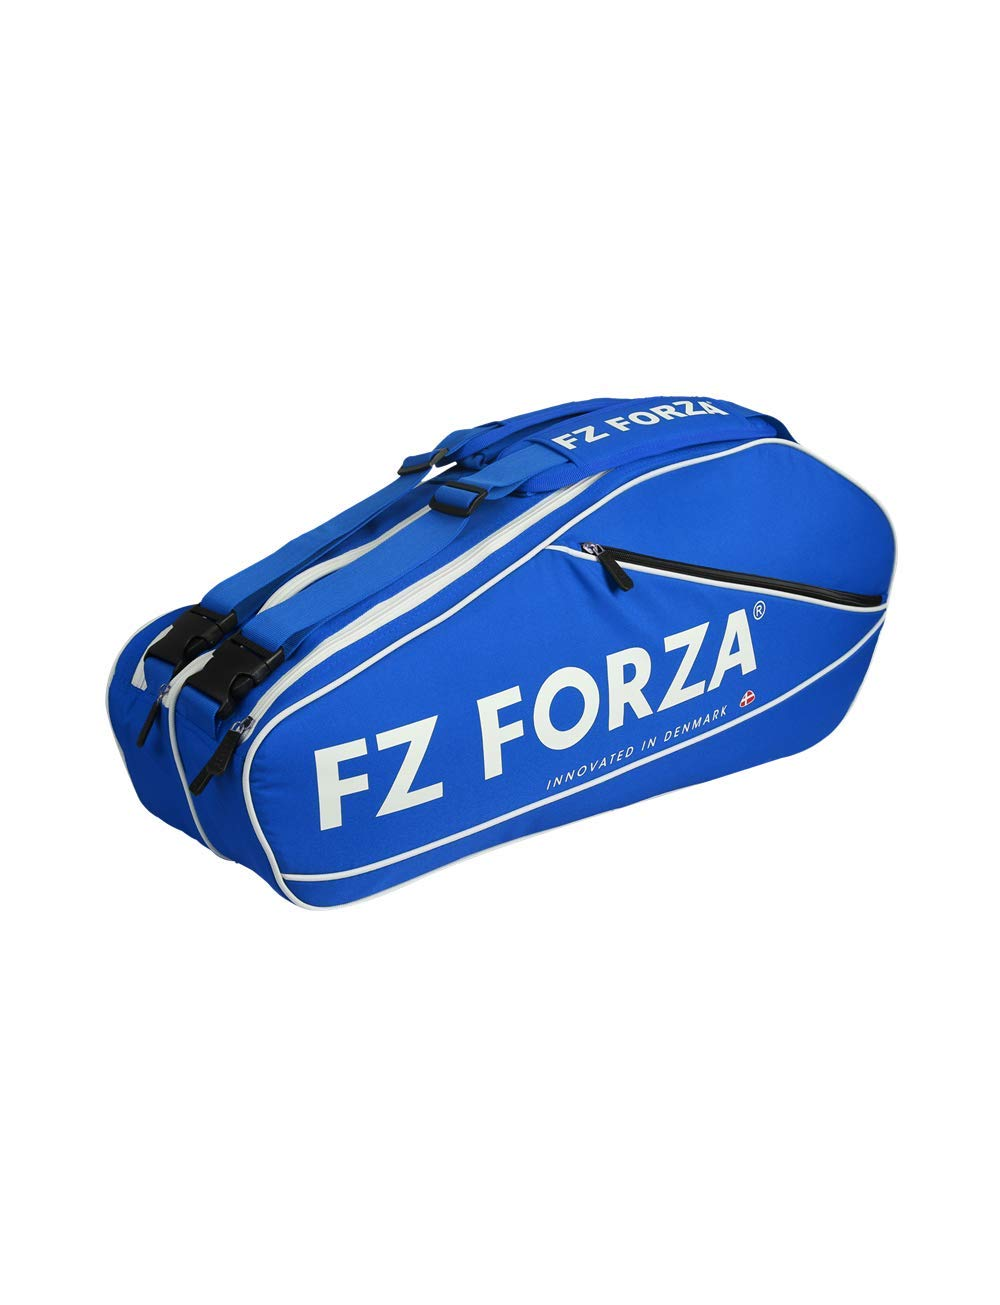 Racketbag Star for up to 6 racquets FZ Forza Suitable for badminton squash tennis etc.